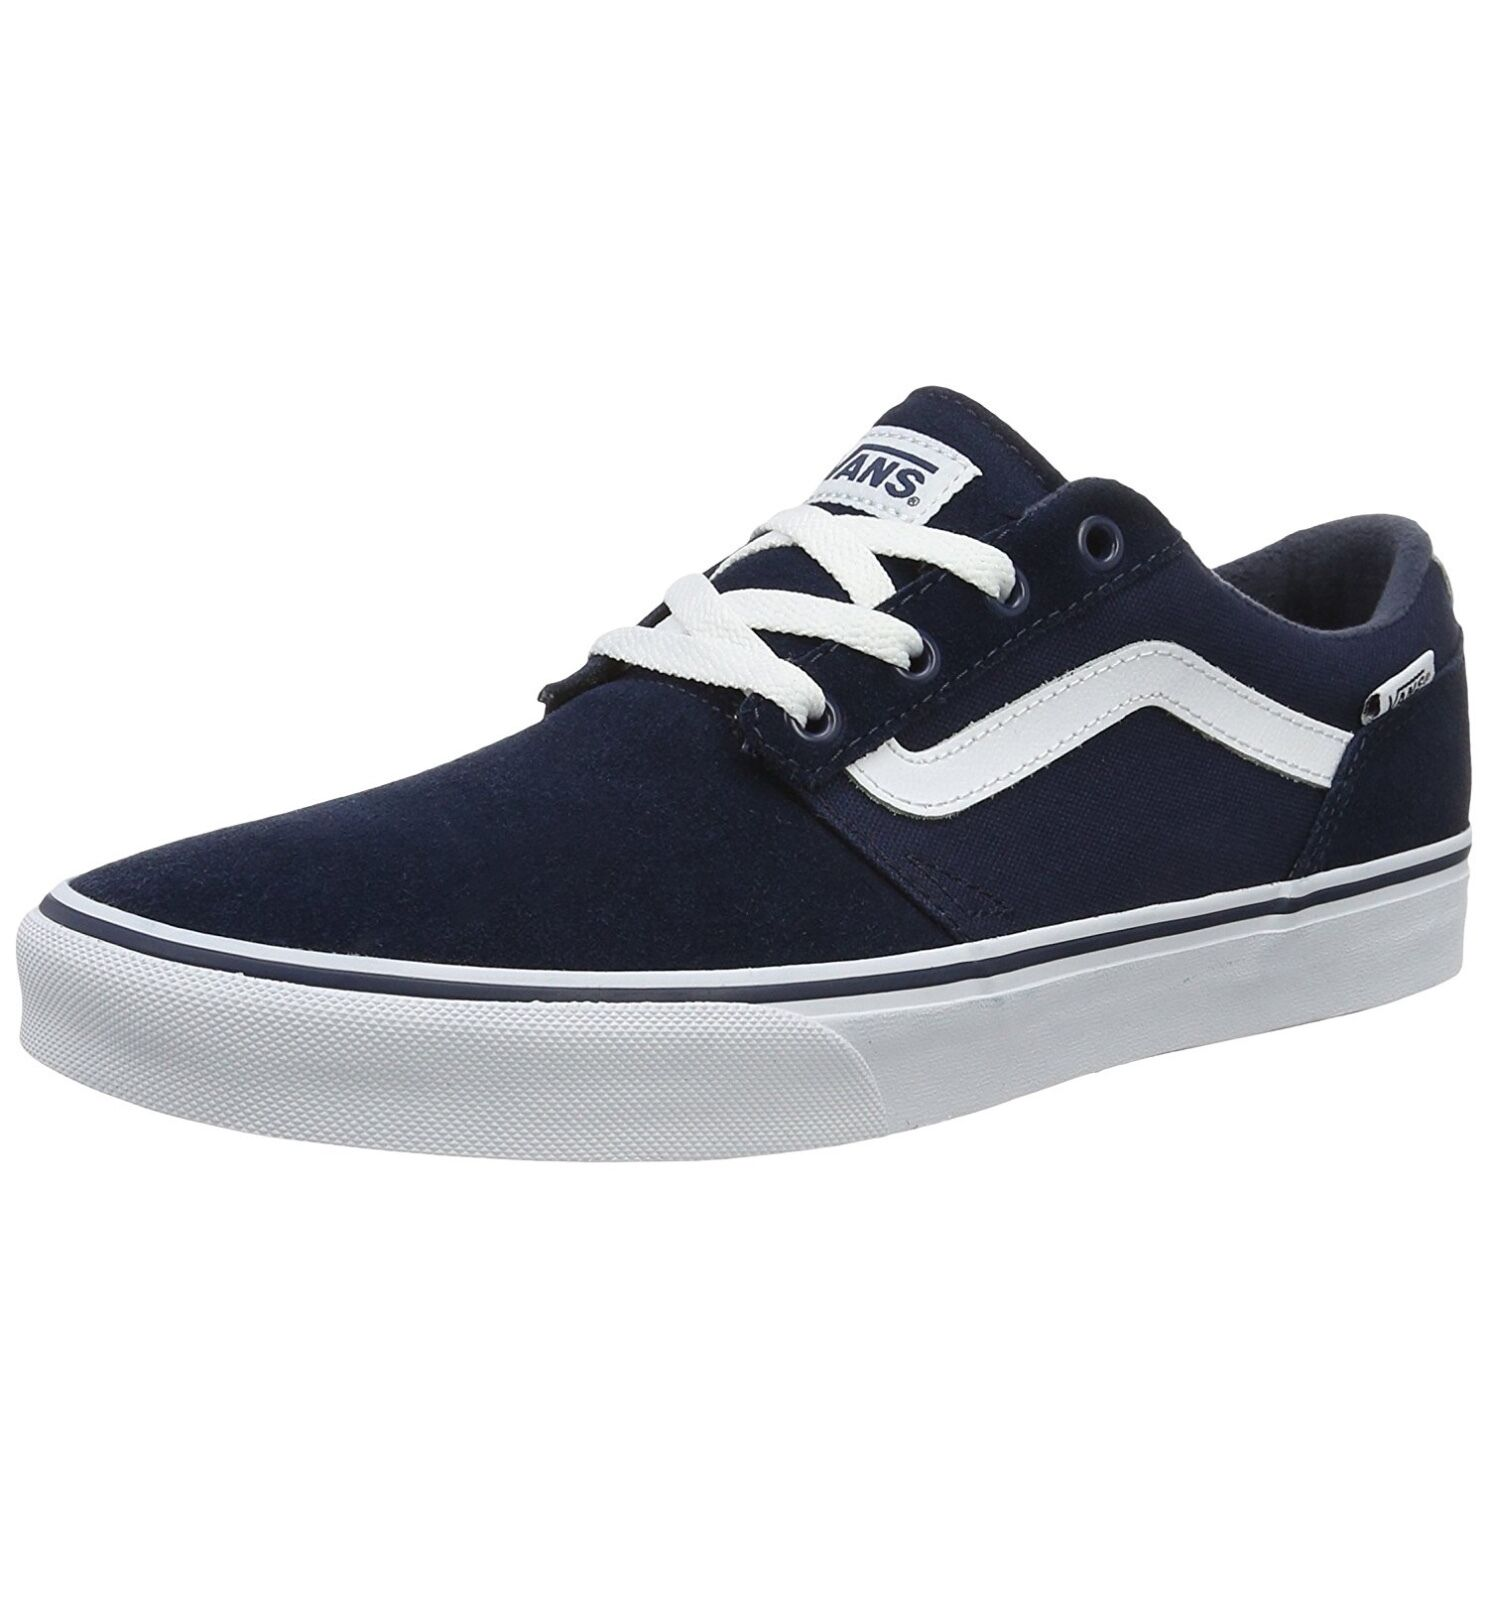 VANS Chapman Niedrig Stripe Canvas Fashion Casual Skater Schuhes Casual Fashion Trainers Suede Blau 9011d0